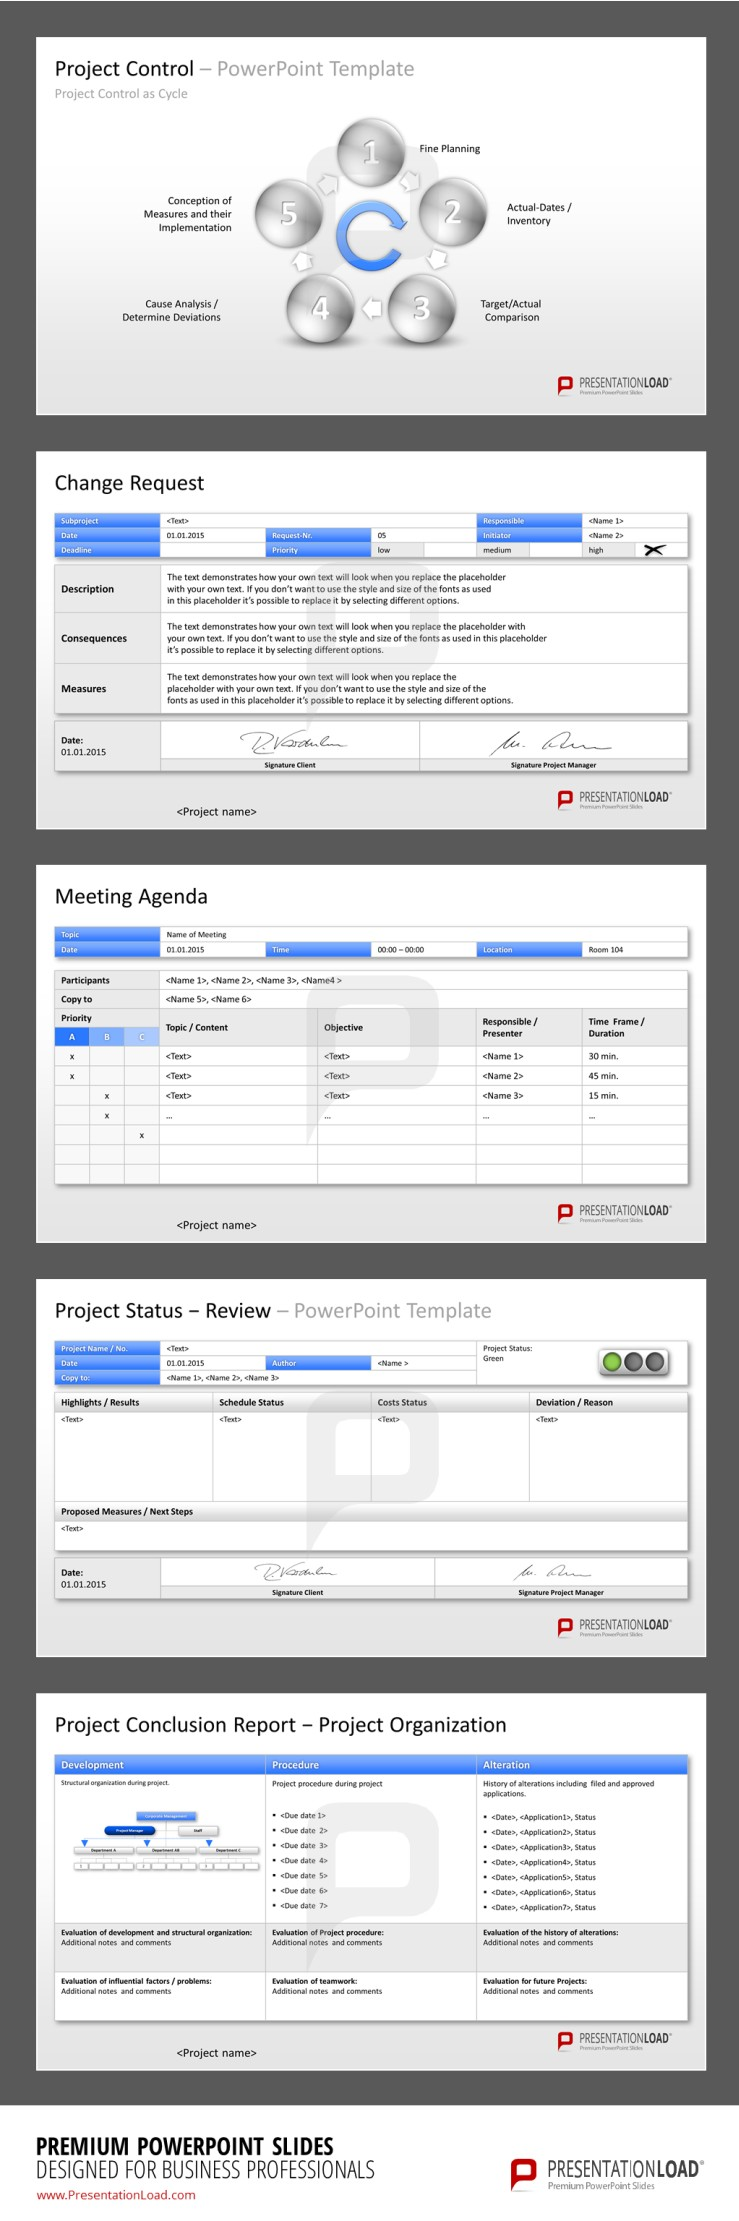 Project Management Powerpoint Templates To Keep The Overview Of